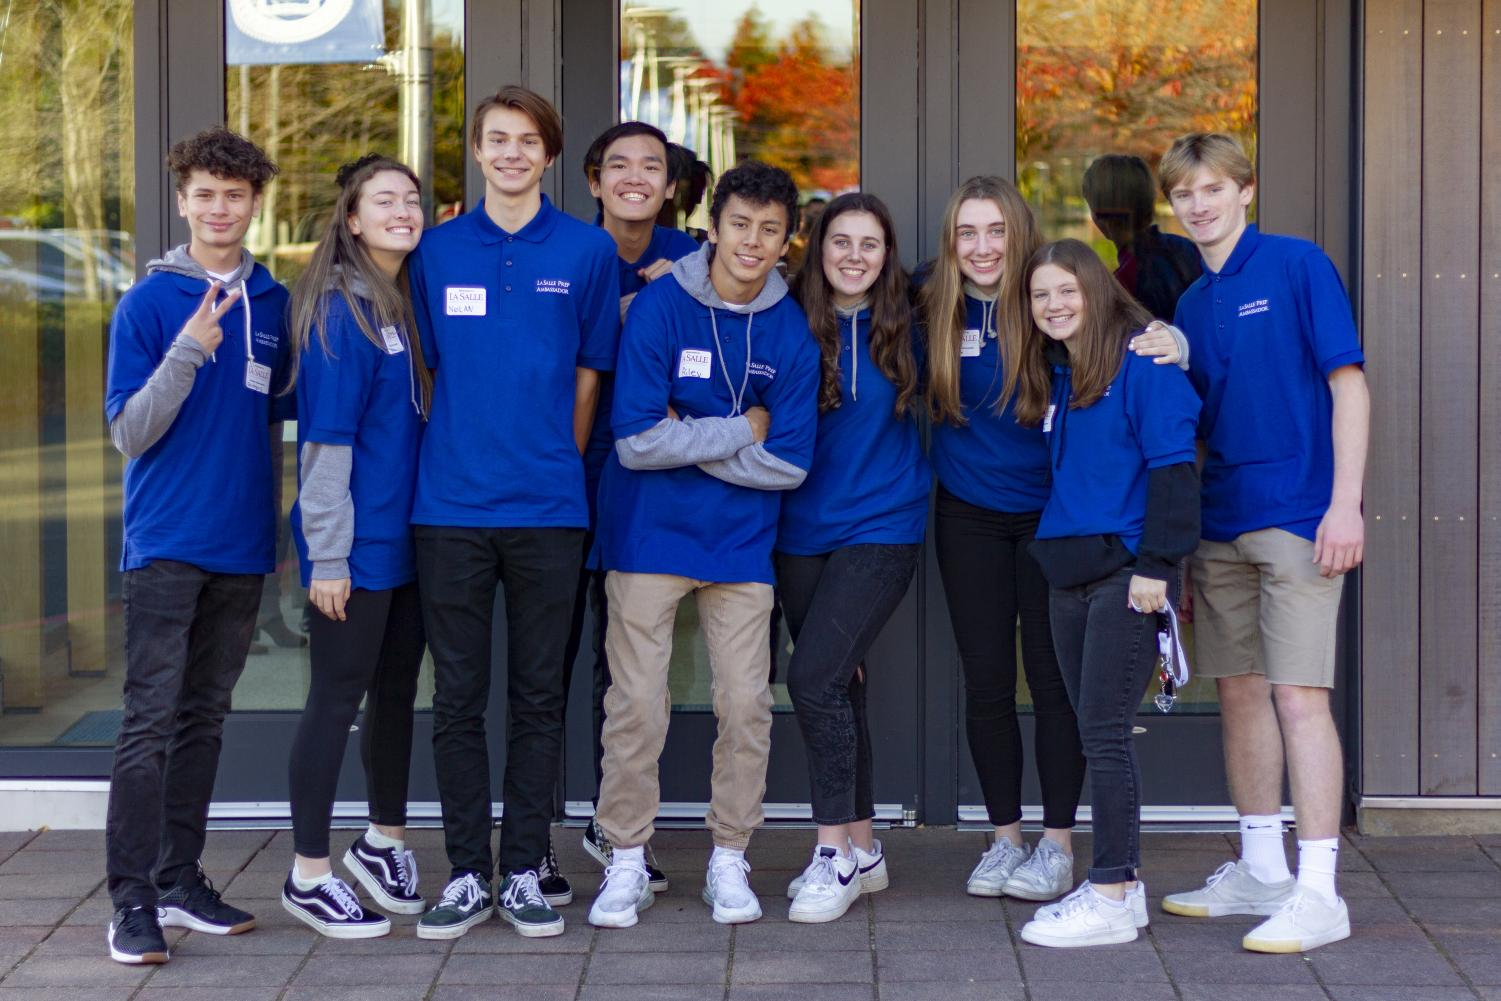 Student+ambassadors+pose+in+front+of+the+school+after+welcoming+visitors.